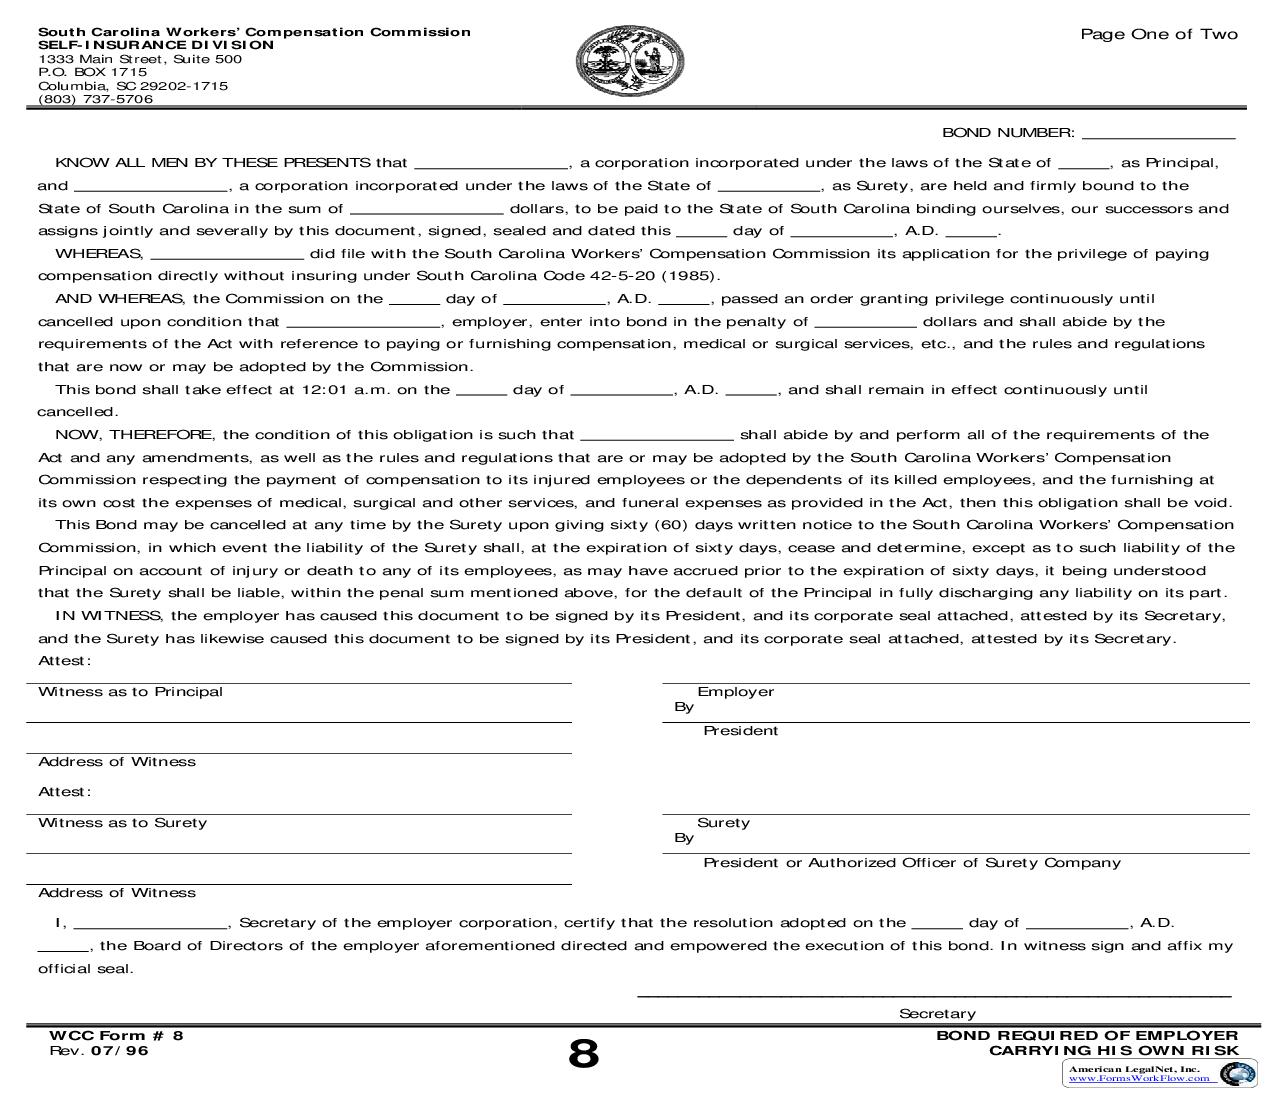 Bond Required Of Employer Carrying His Own Risk {8} | Pdf Fpdf Doc Docx | South Carolina